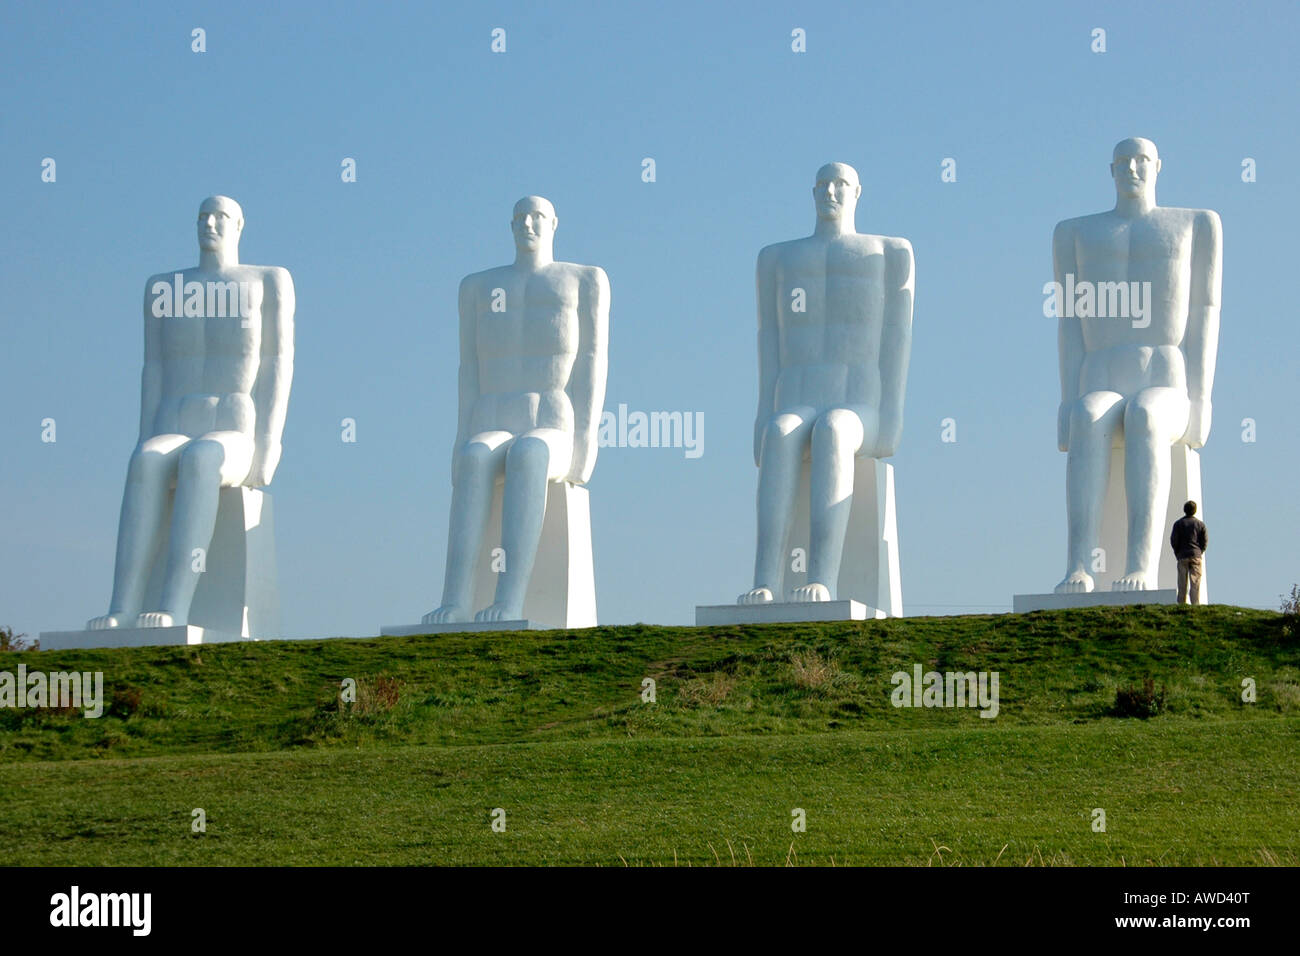 Group of Sculptures at Esbjerg beach, Denmark, Europe Stock Photo, Royalty Free Image: 16543751 ...